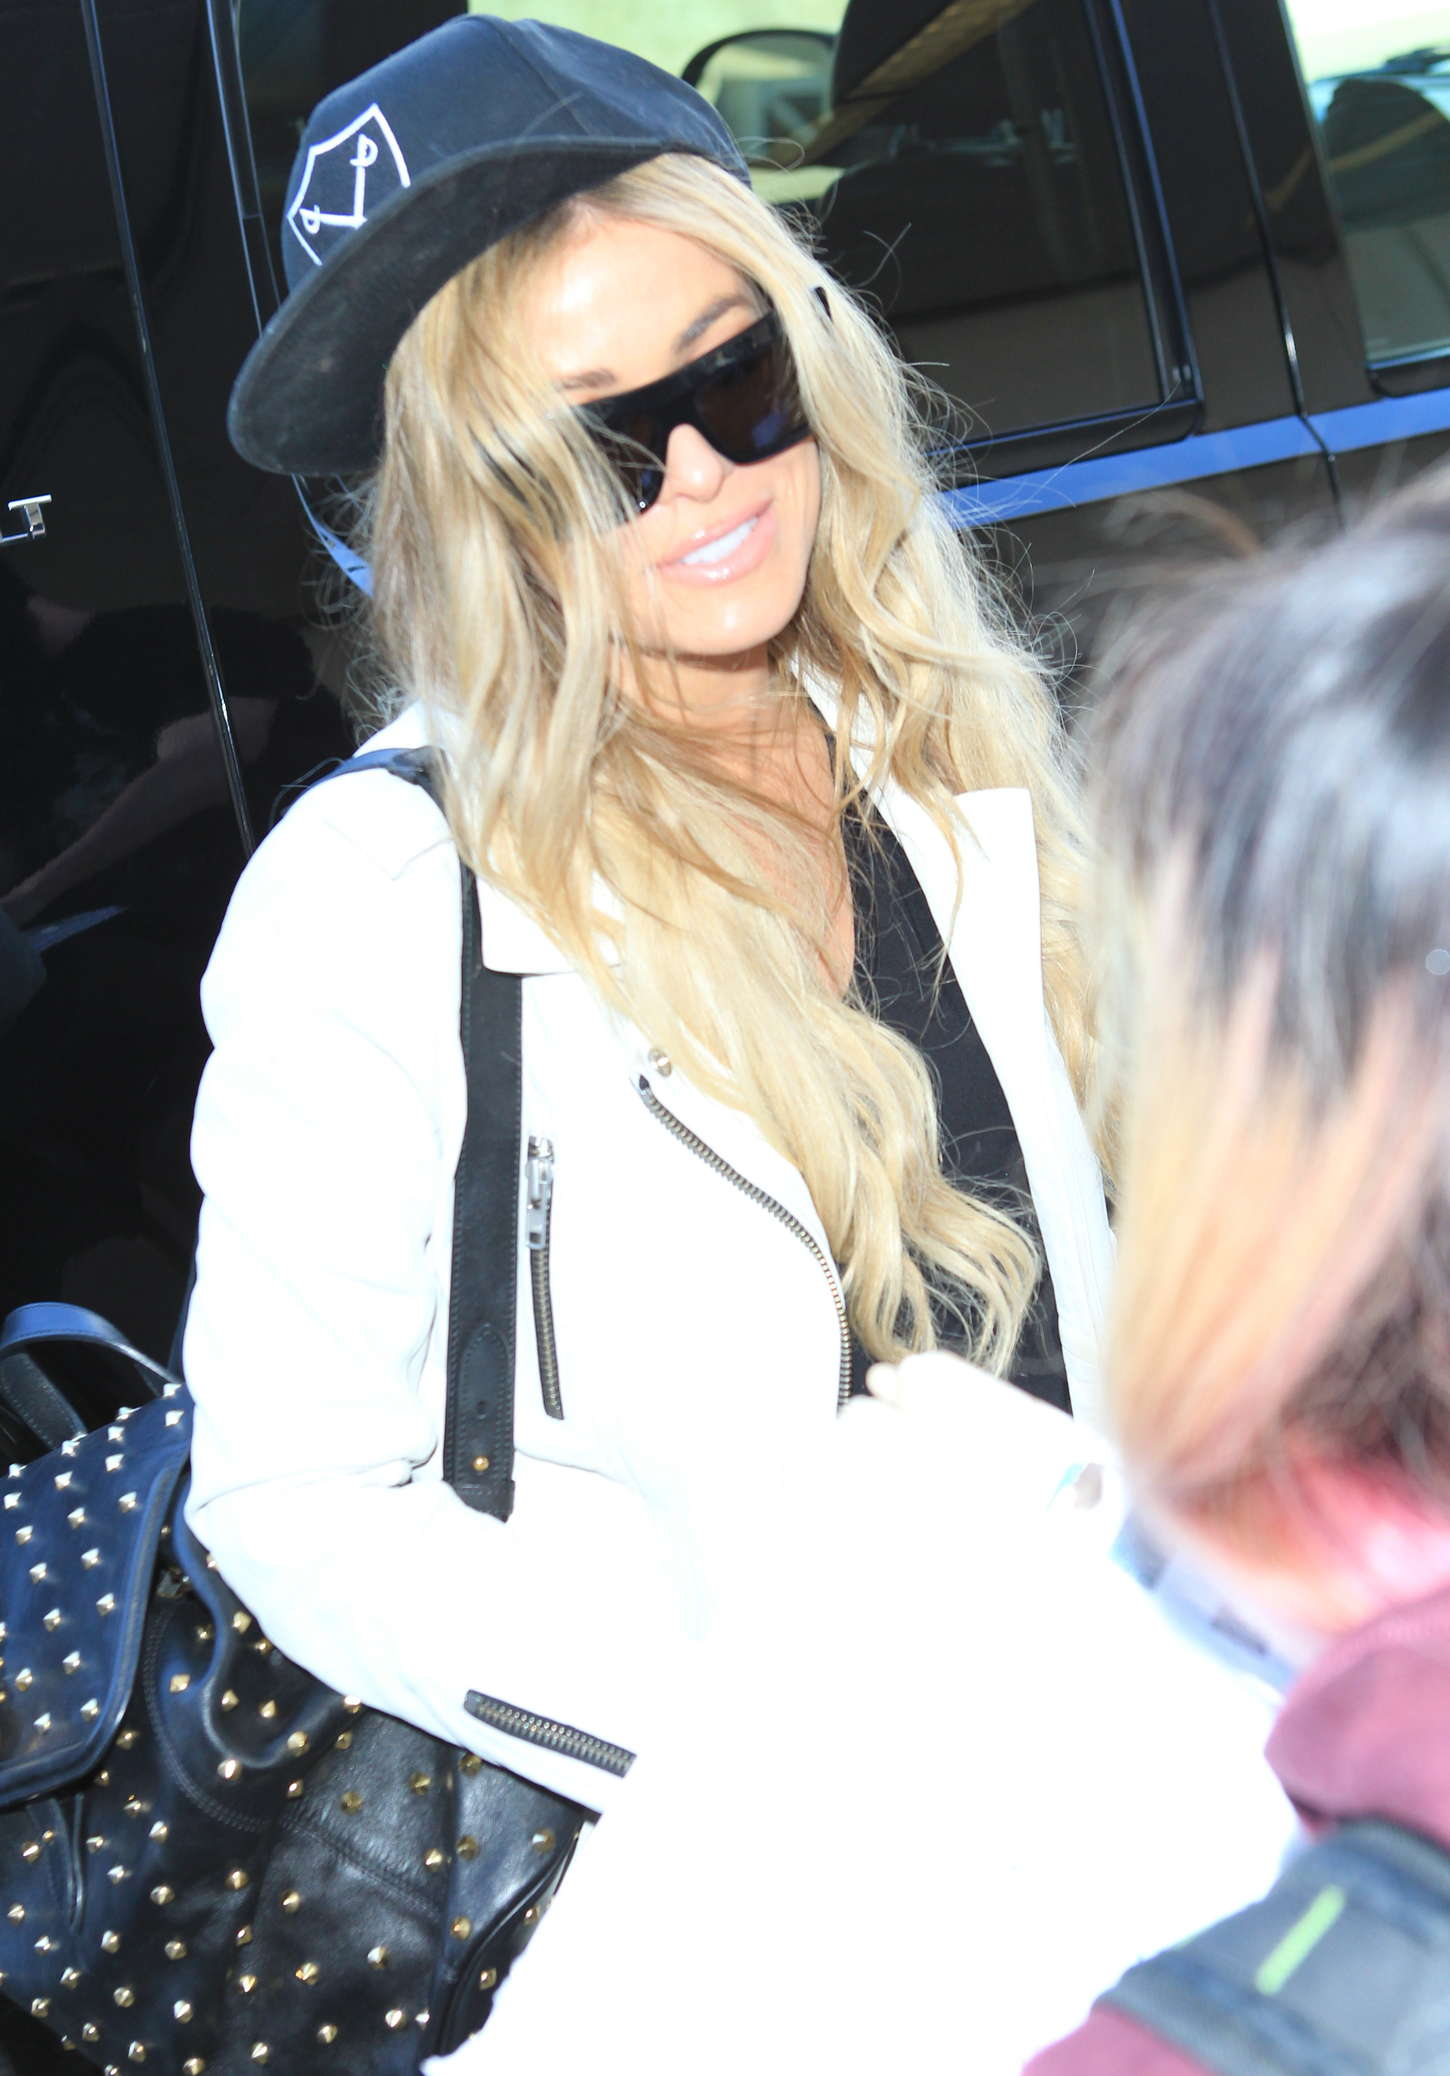 Carmen Electra Booty in Jeans at LAX -07   GotCeleb